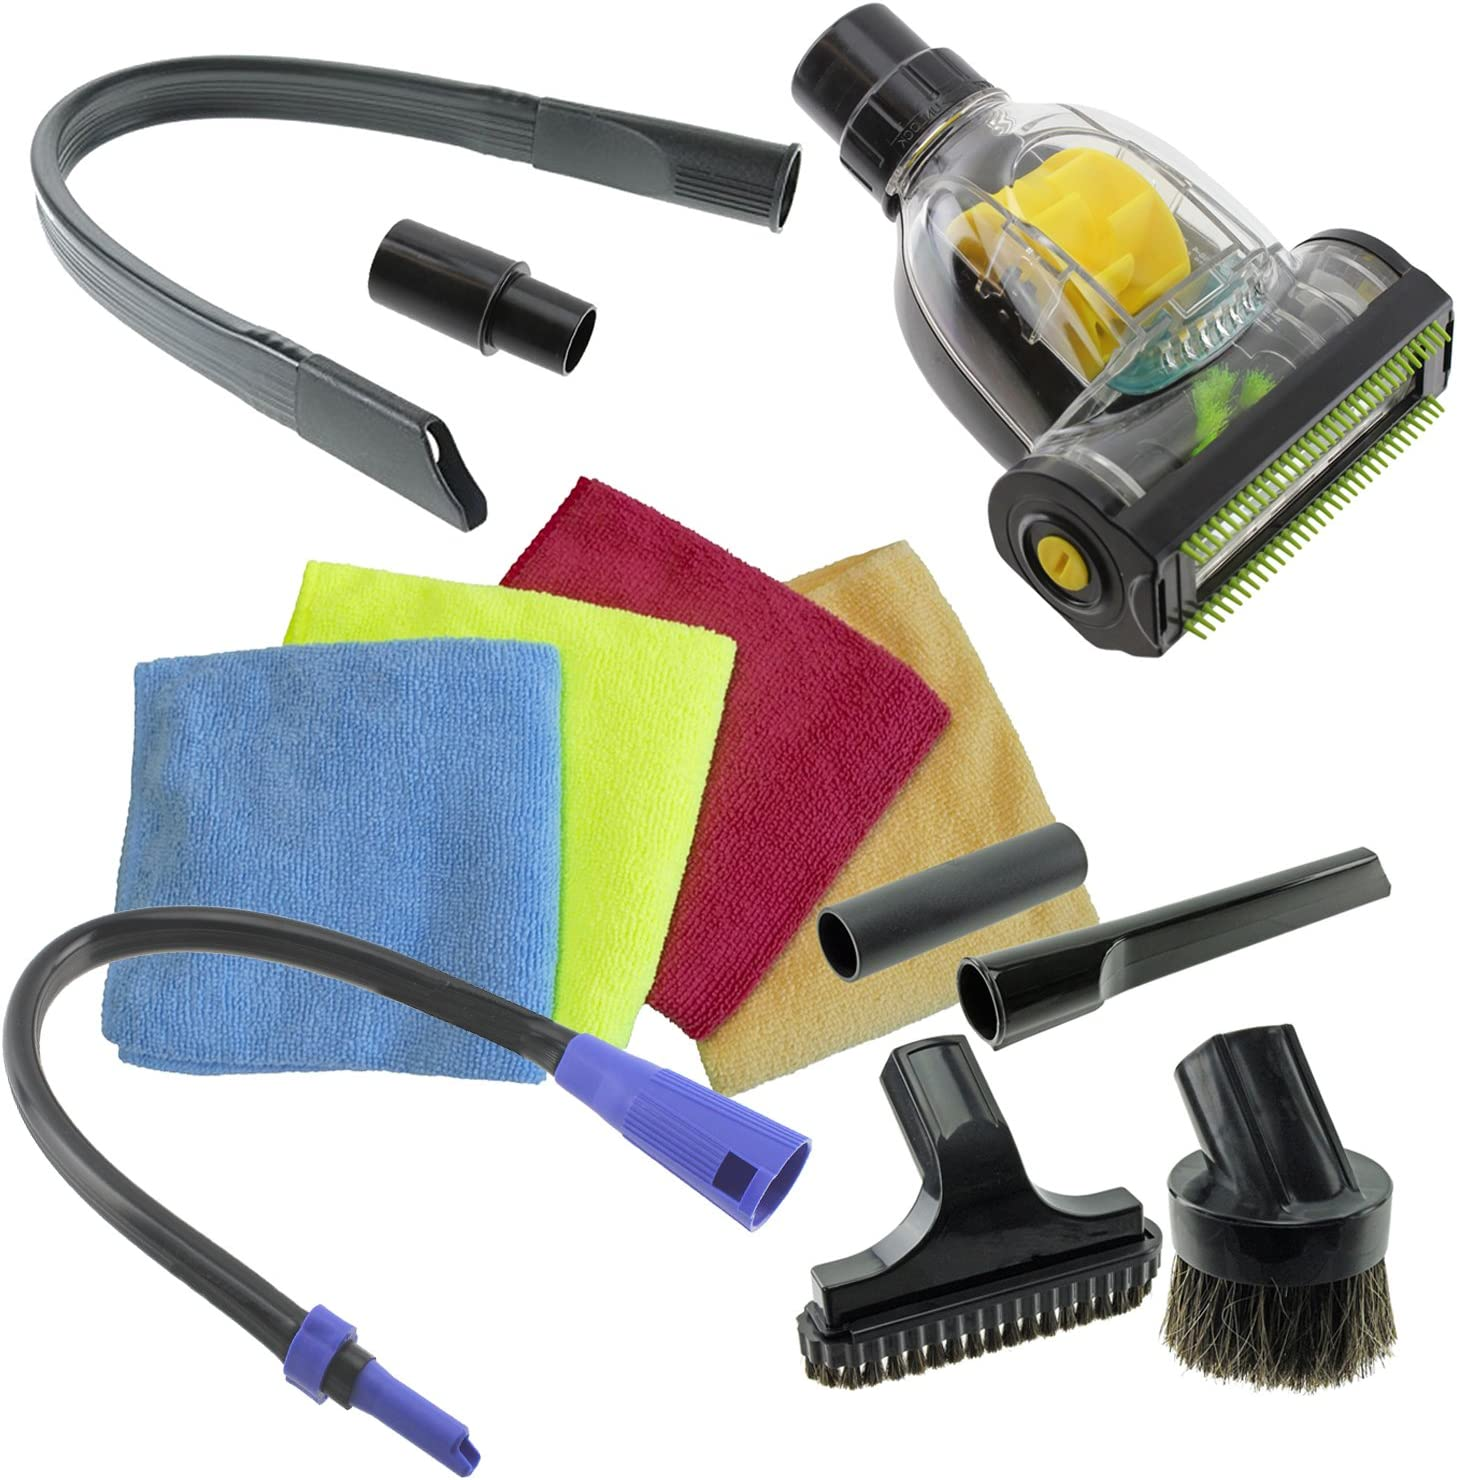 35mm Hoover Vacuum Cleaner Kit Crevice Stair Brush Tool for Numatic Henry Hetty